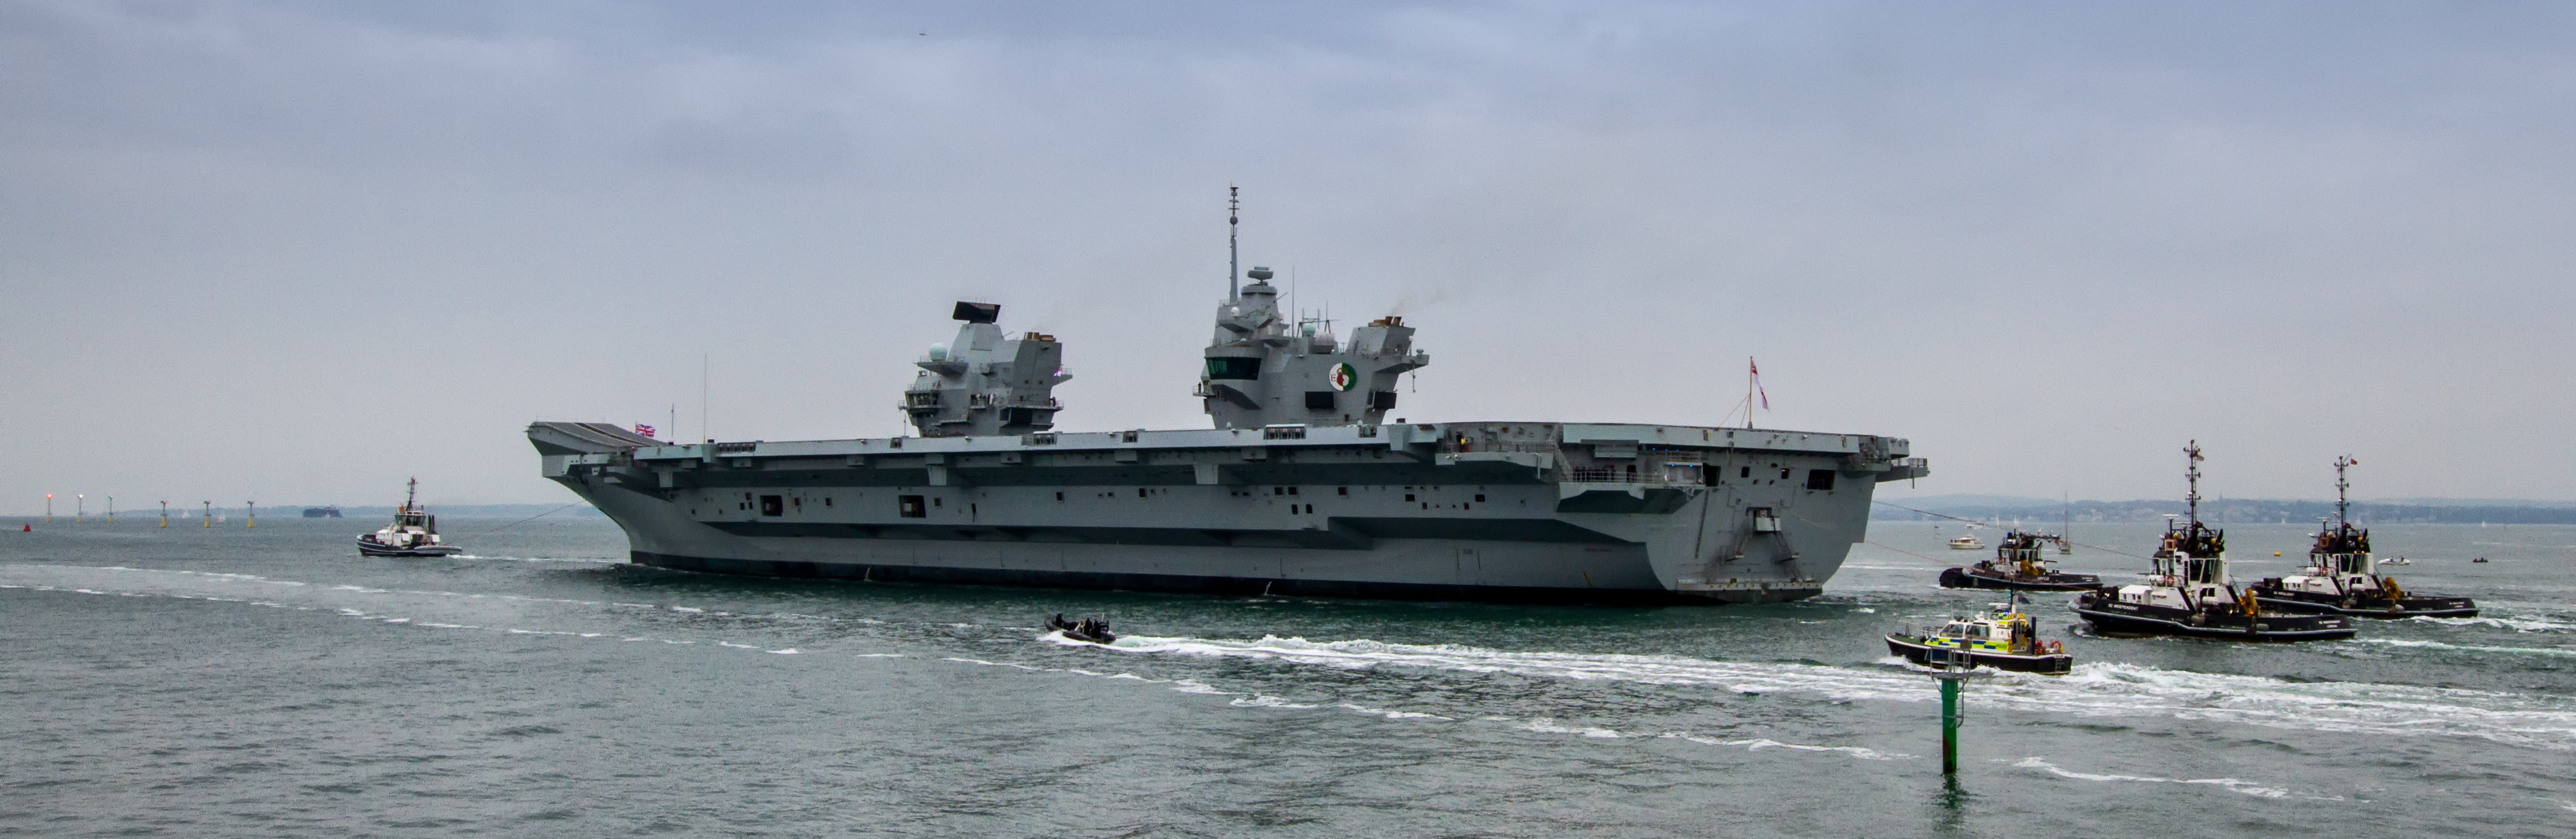 Aircraft Carrier (HMS Queen Elizabeth & HMS Prince of Wales) - Page 25 42709038801_820ed4507e_o